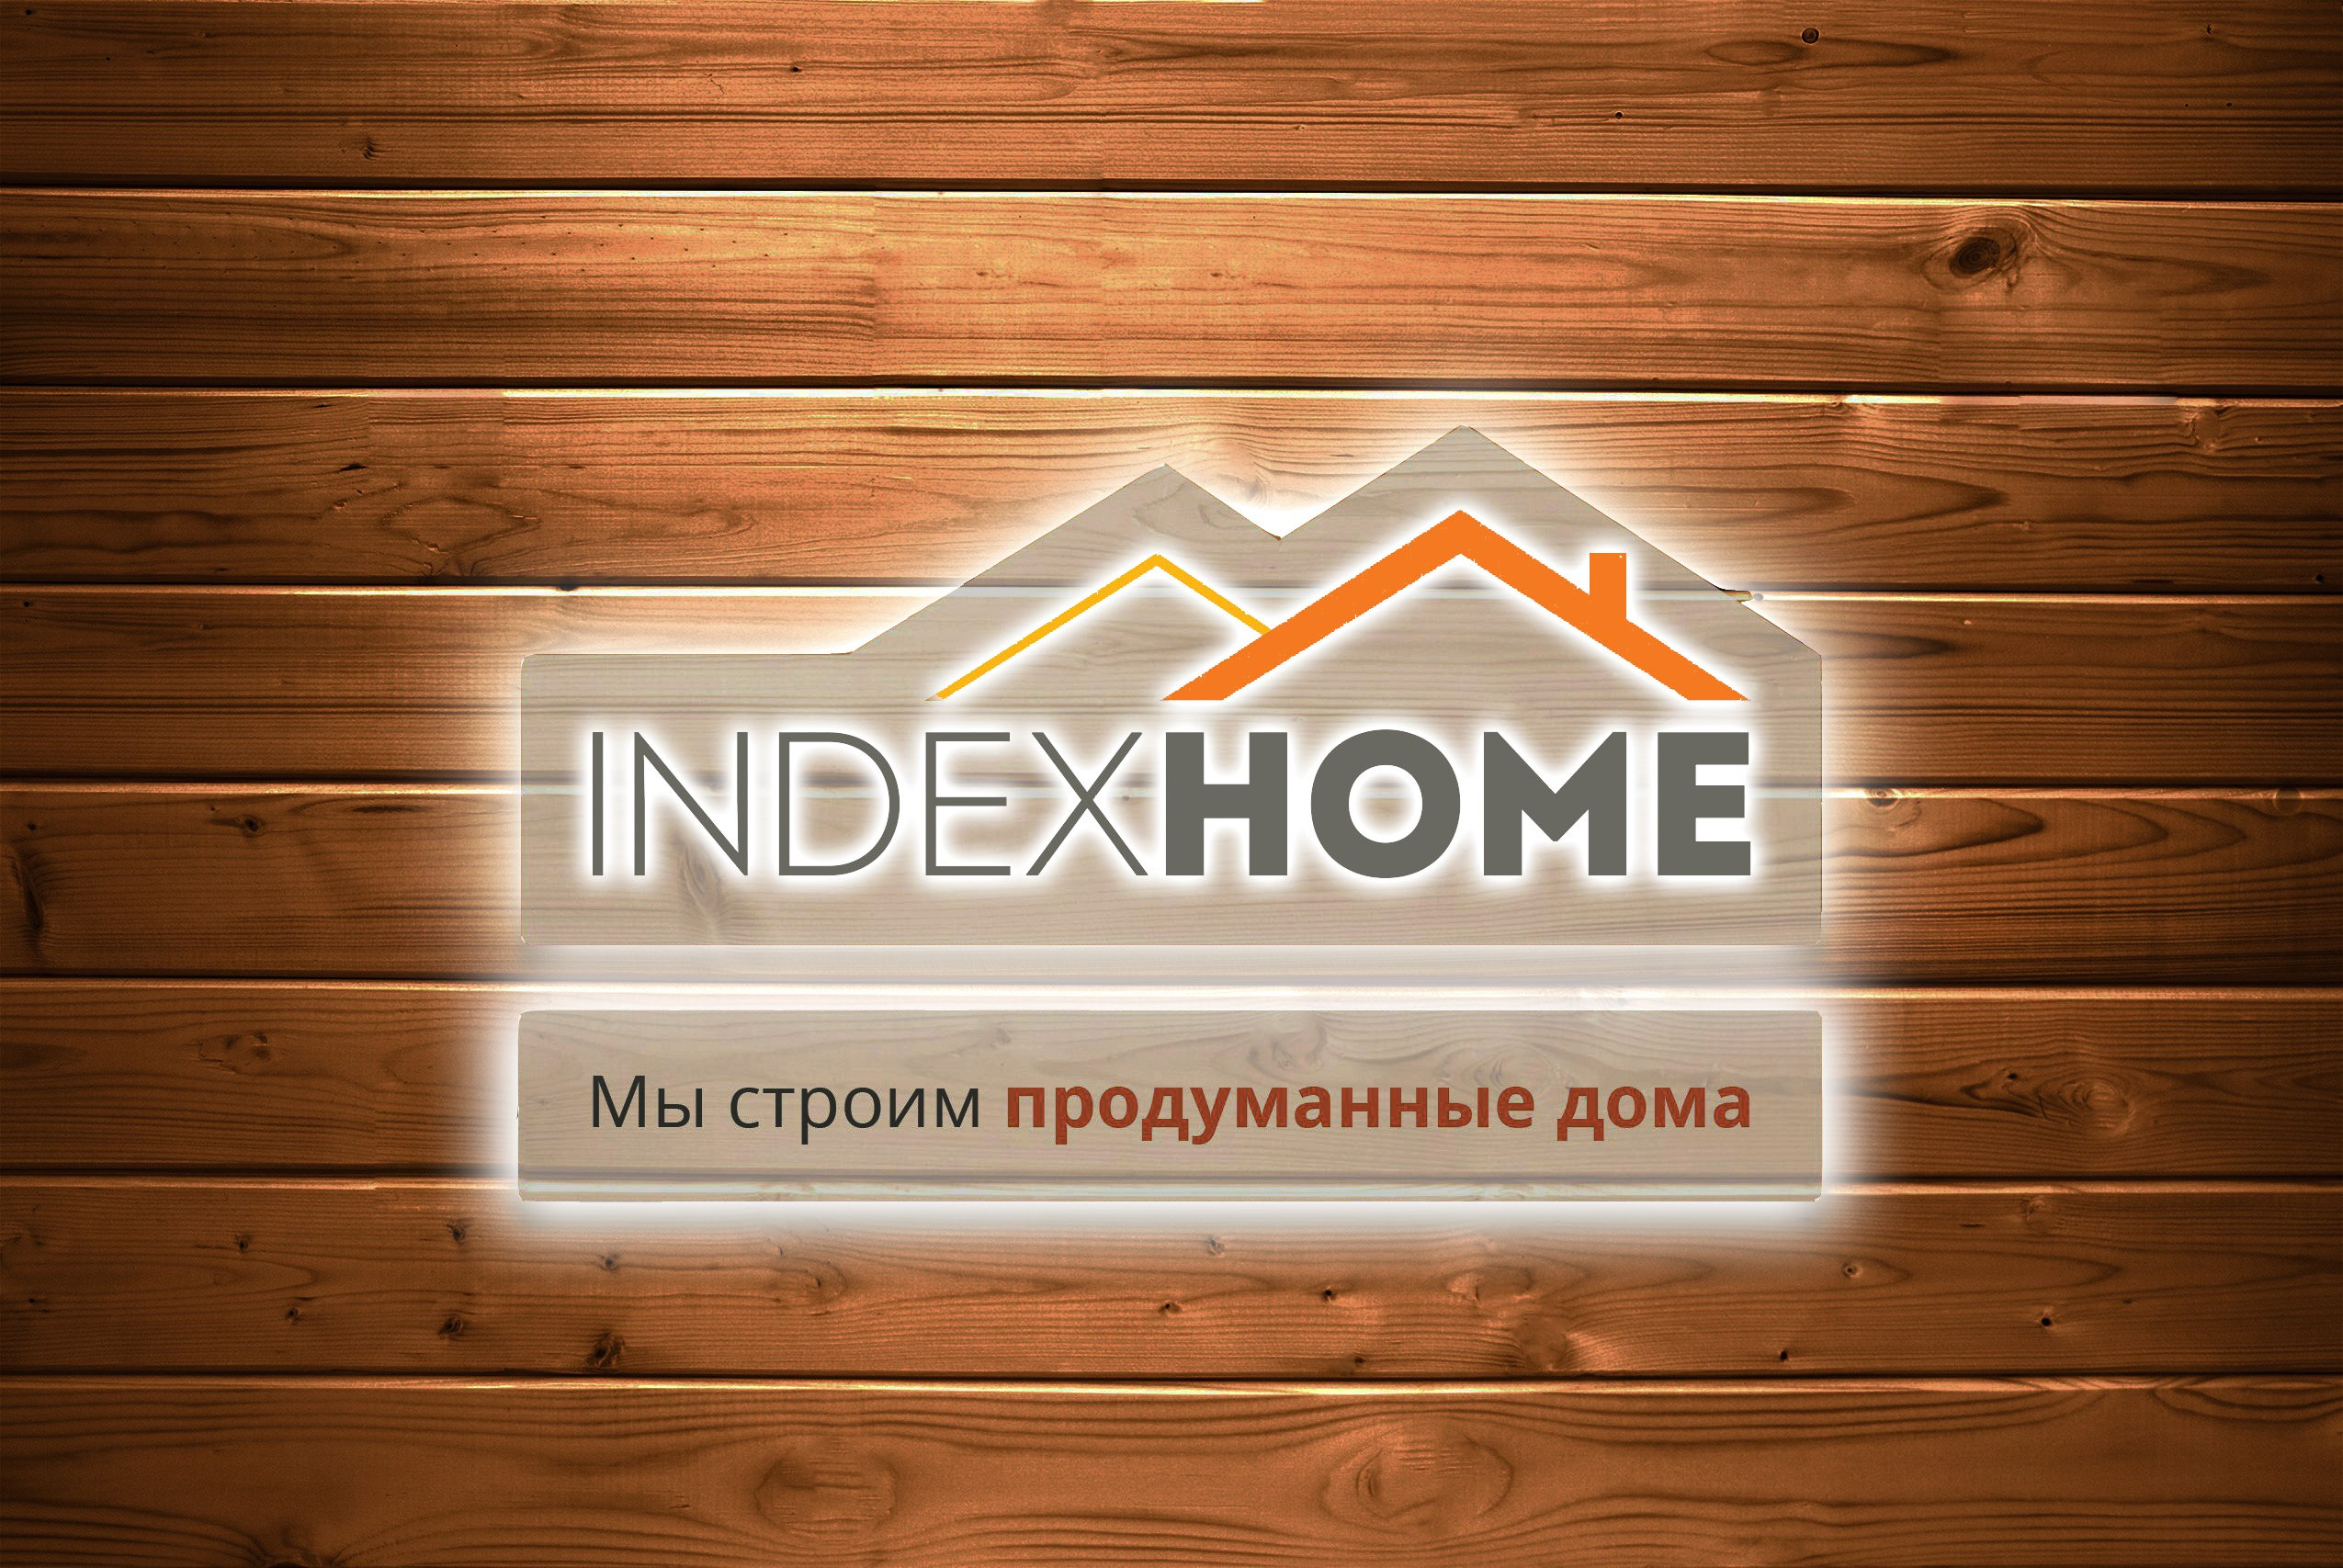 INDEX HOME